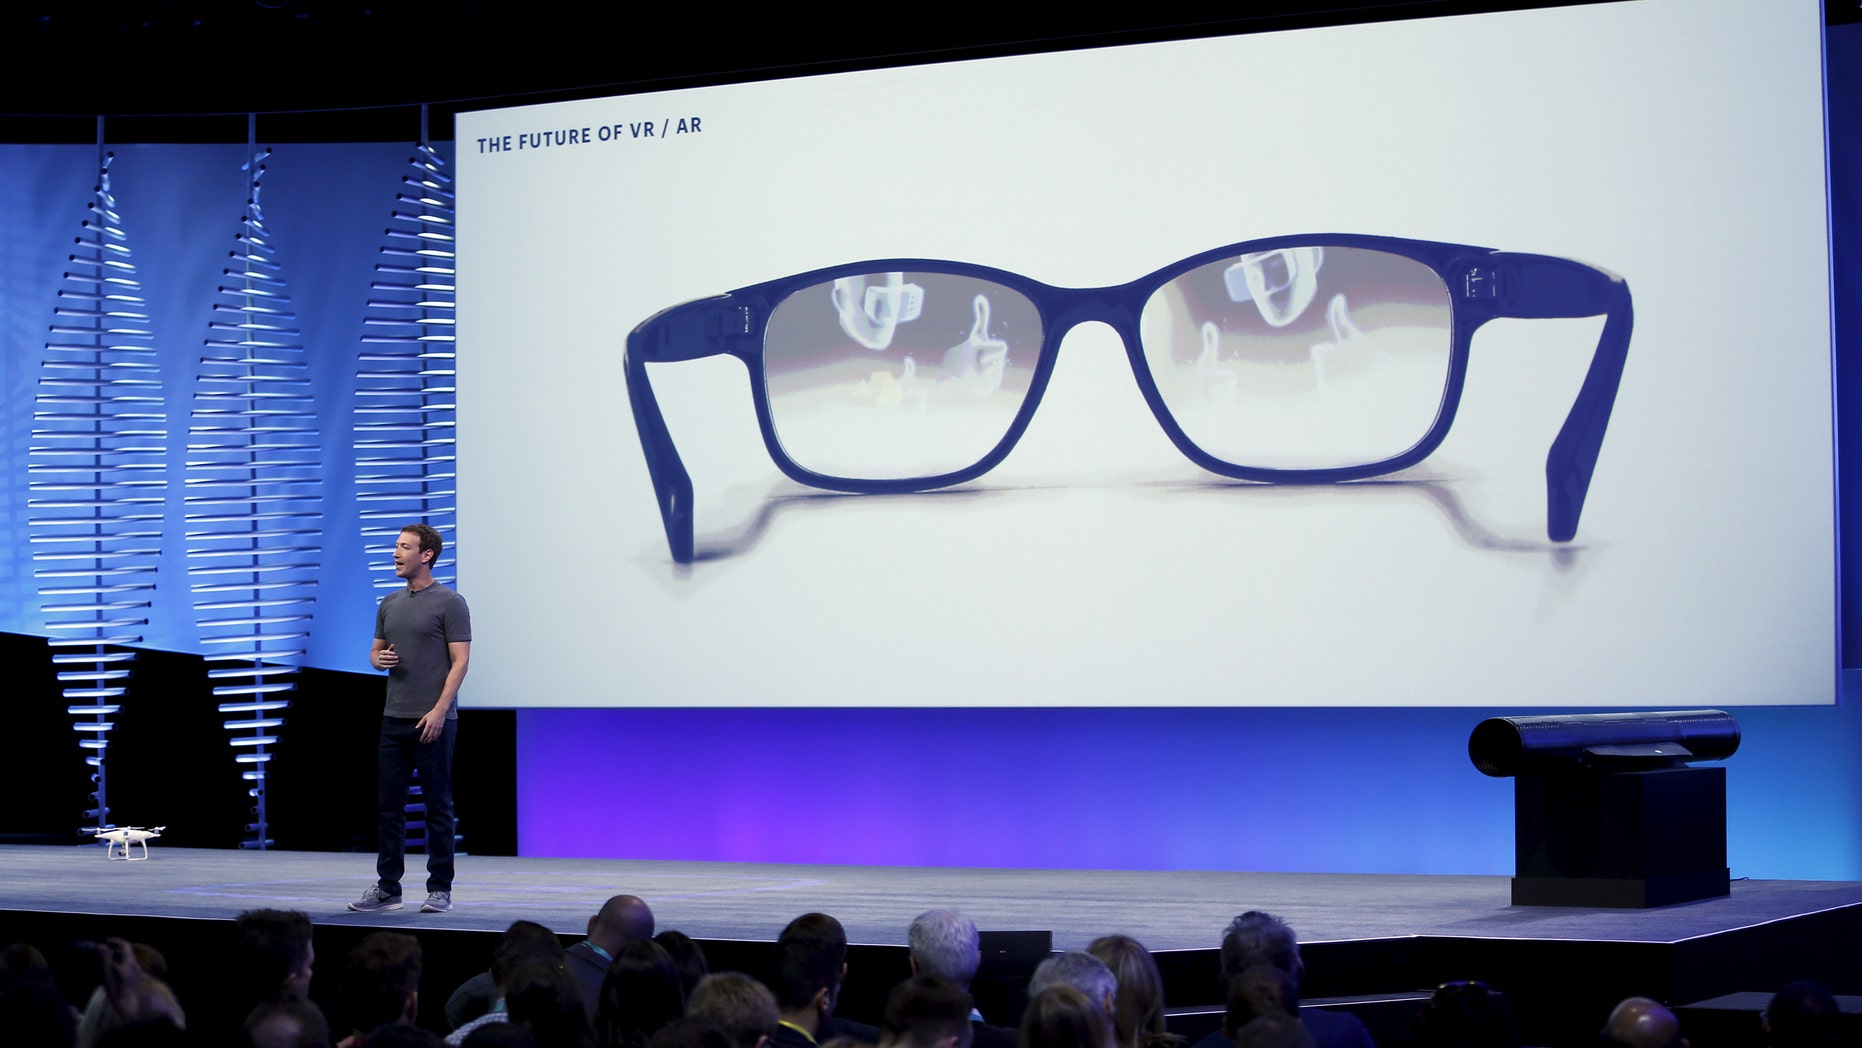 Facebook CEO Mark Zuckerberg speaks on stage during the Facebook F8 conference in San Francisco, California April 12, 2016. (REUTERS/Stephen Lam)